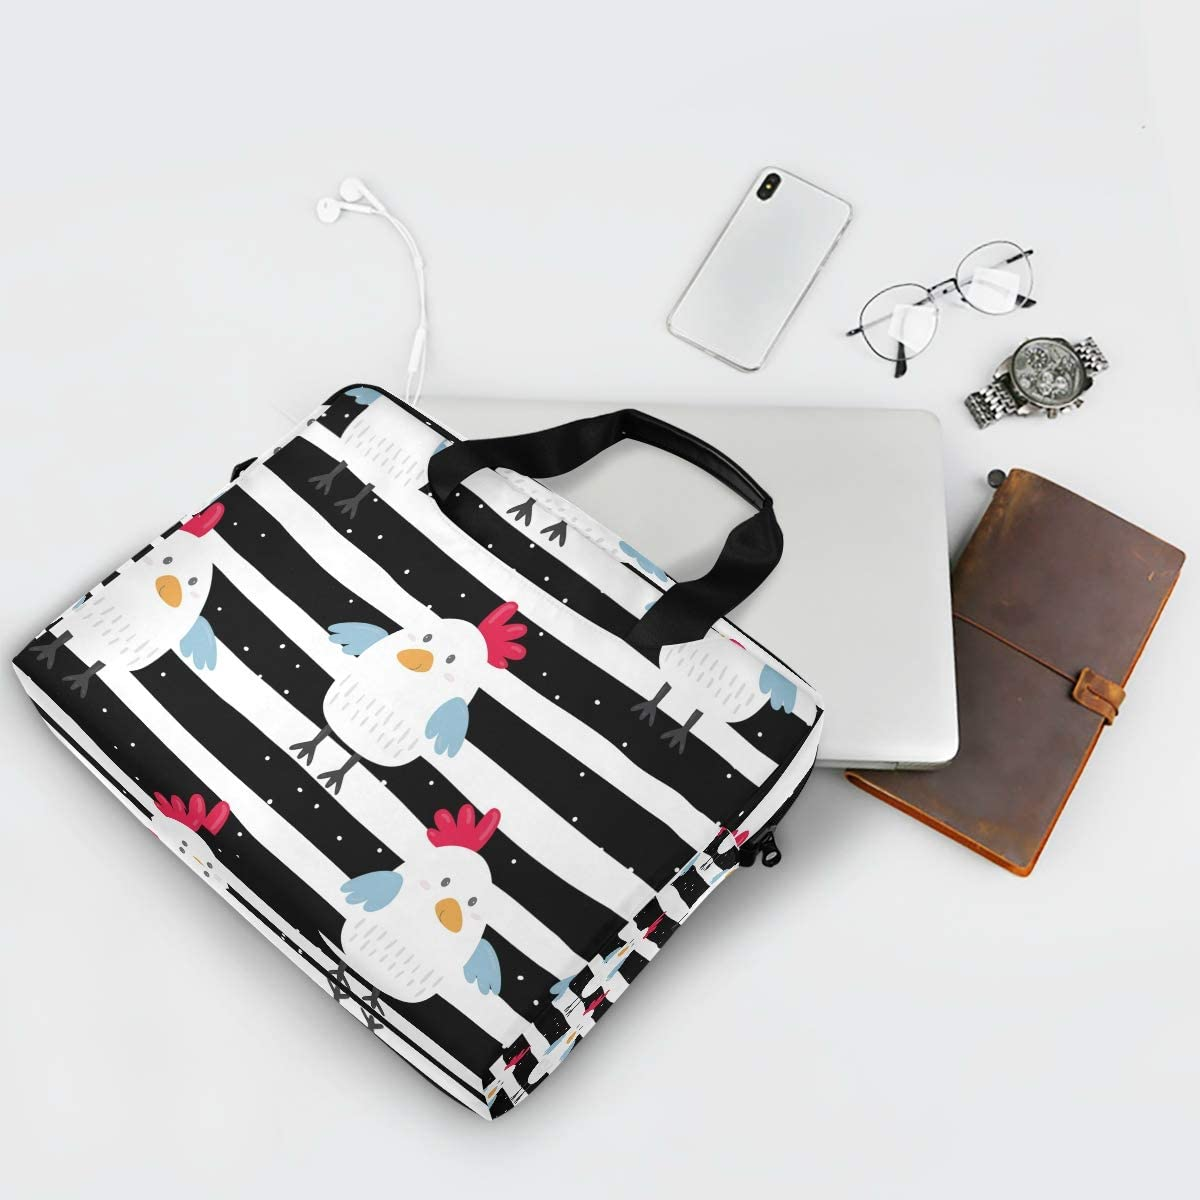 XMCL Laptop Sleeves Case Farm Chicken Rooster 15-16 Inch Laptop Messenger Bag Briefcase with Handle Strap for Men Women